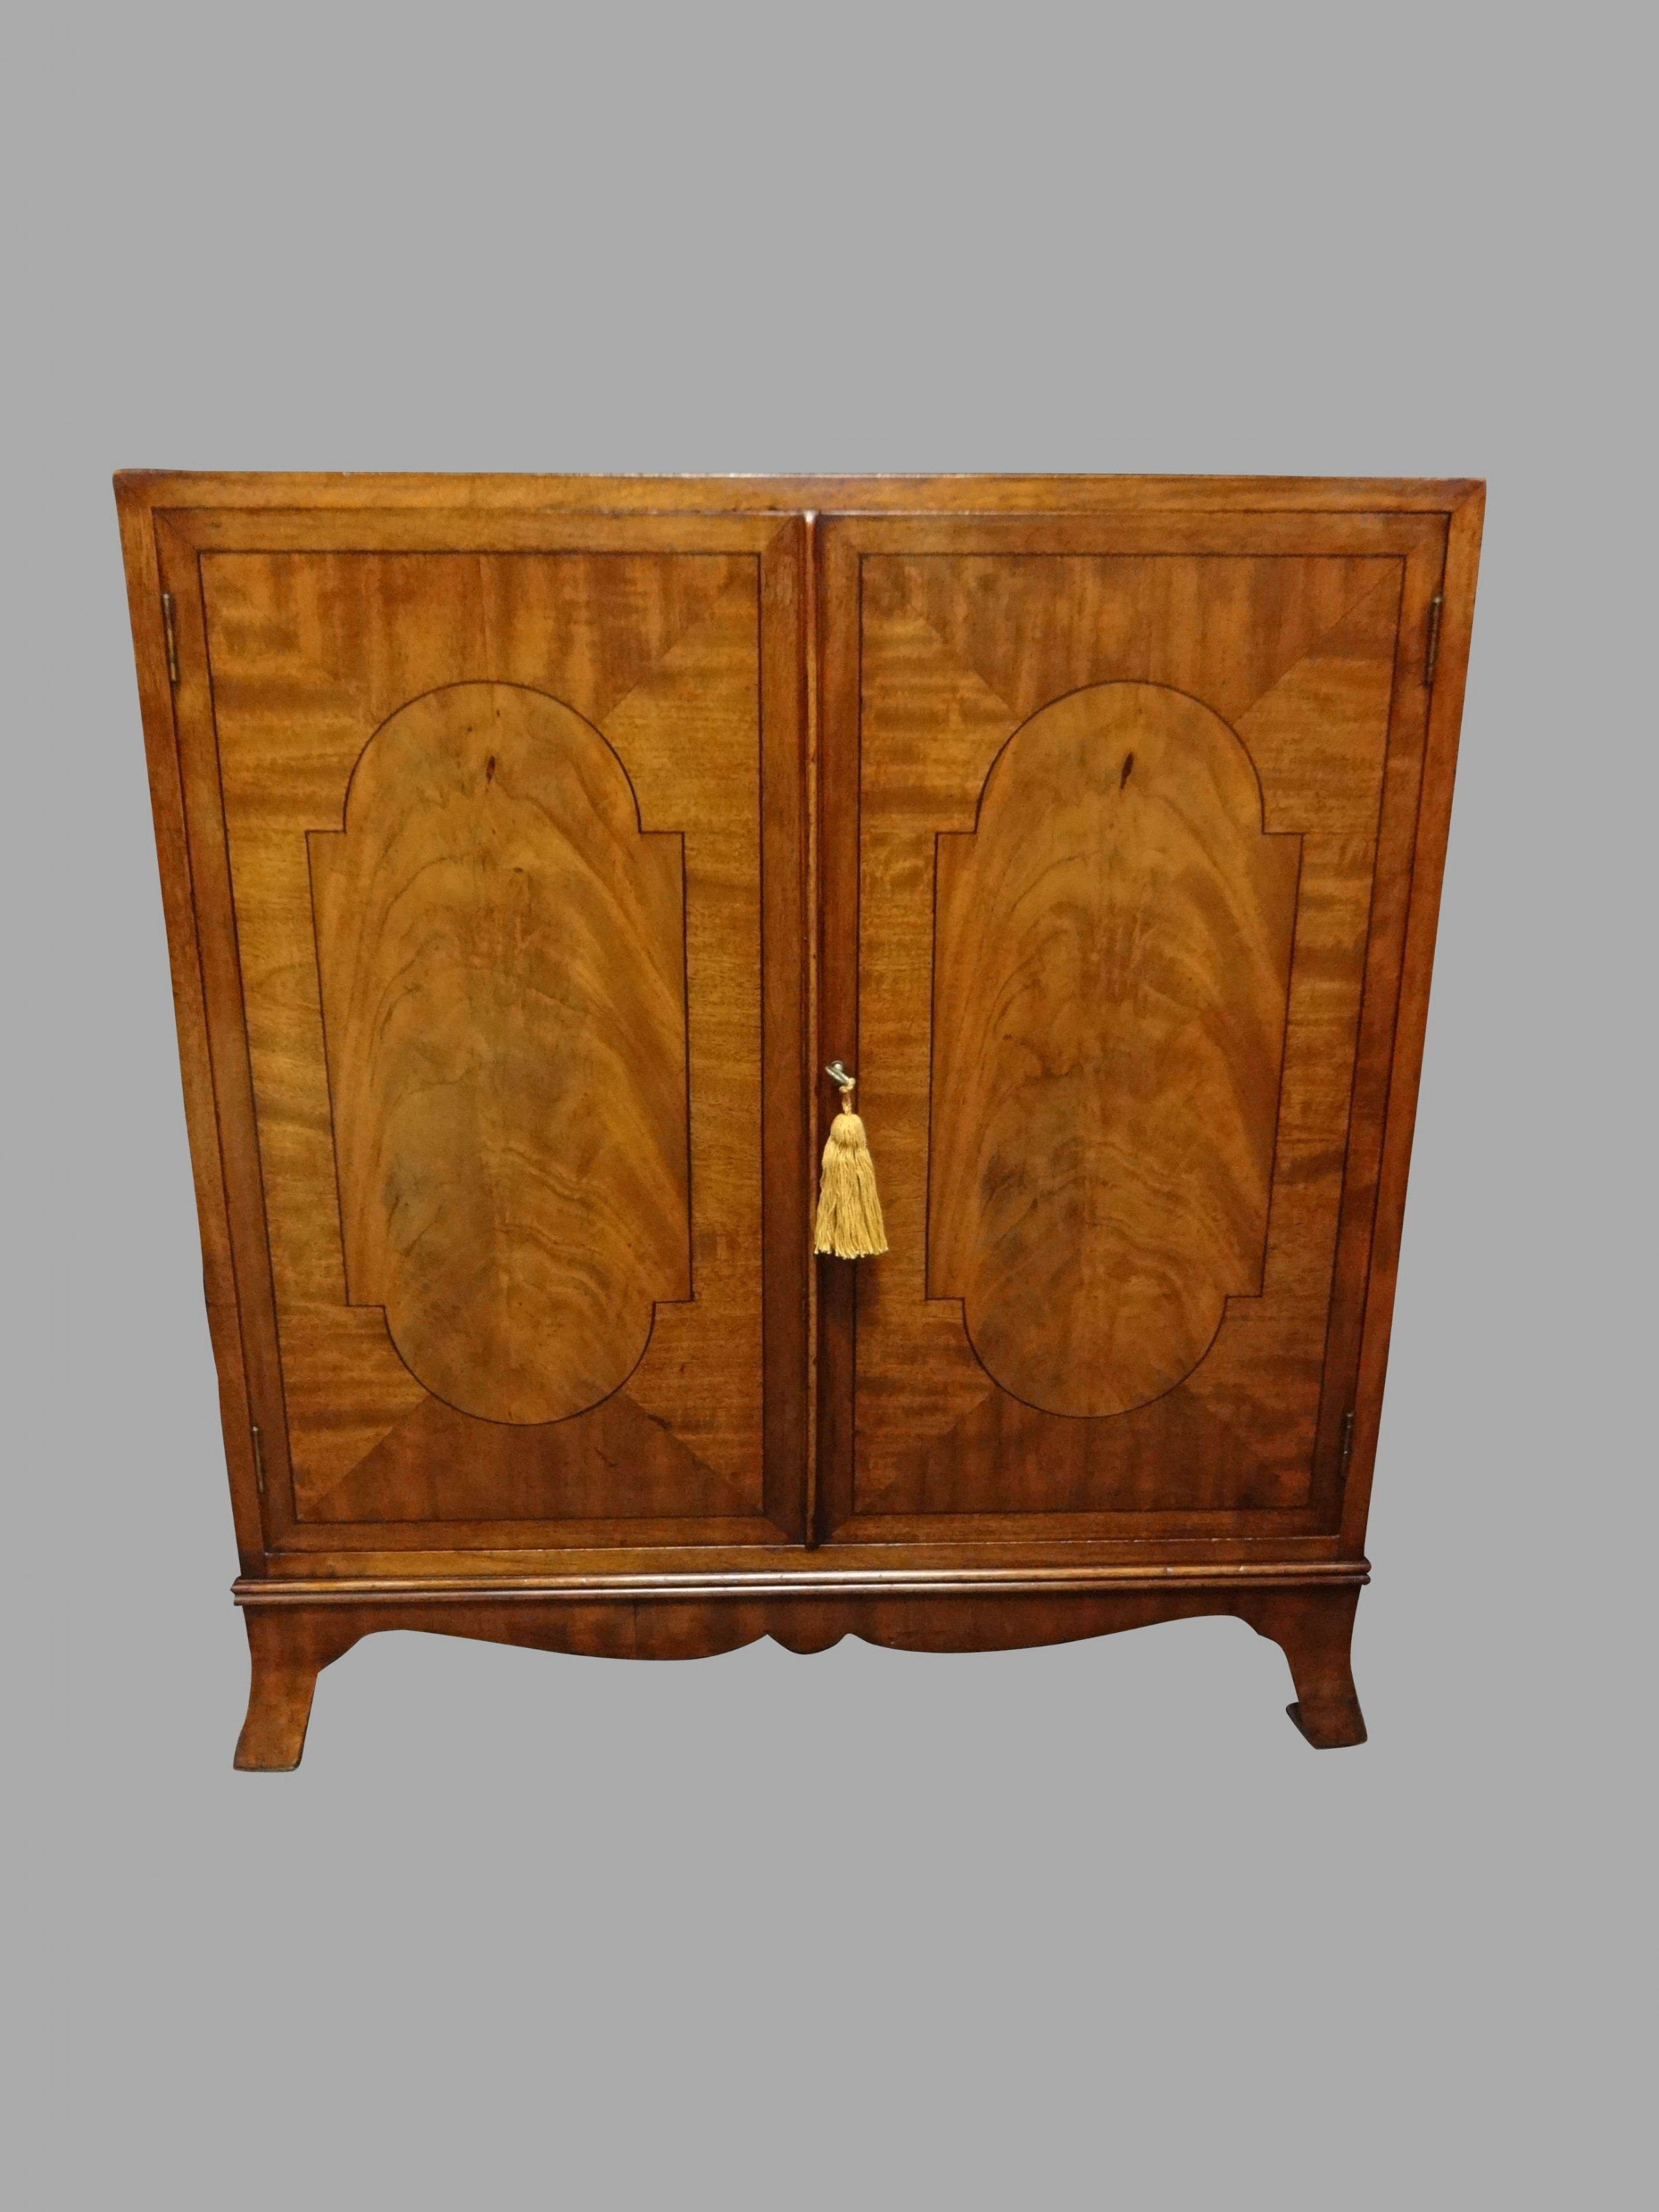 superb mahogany inlaid side cabinet by 'gill reigate london'